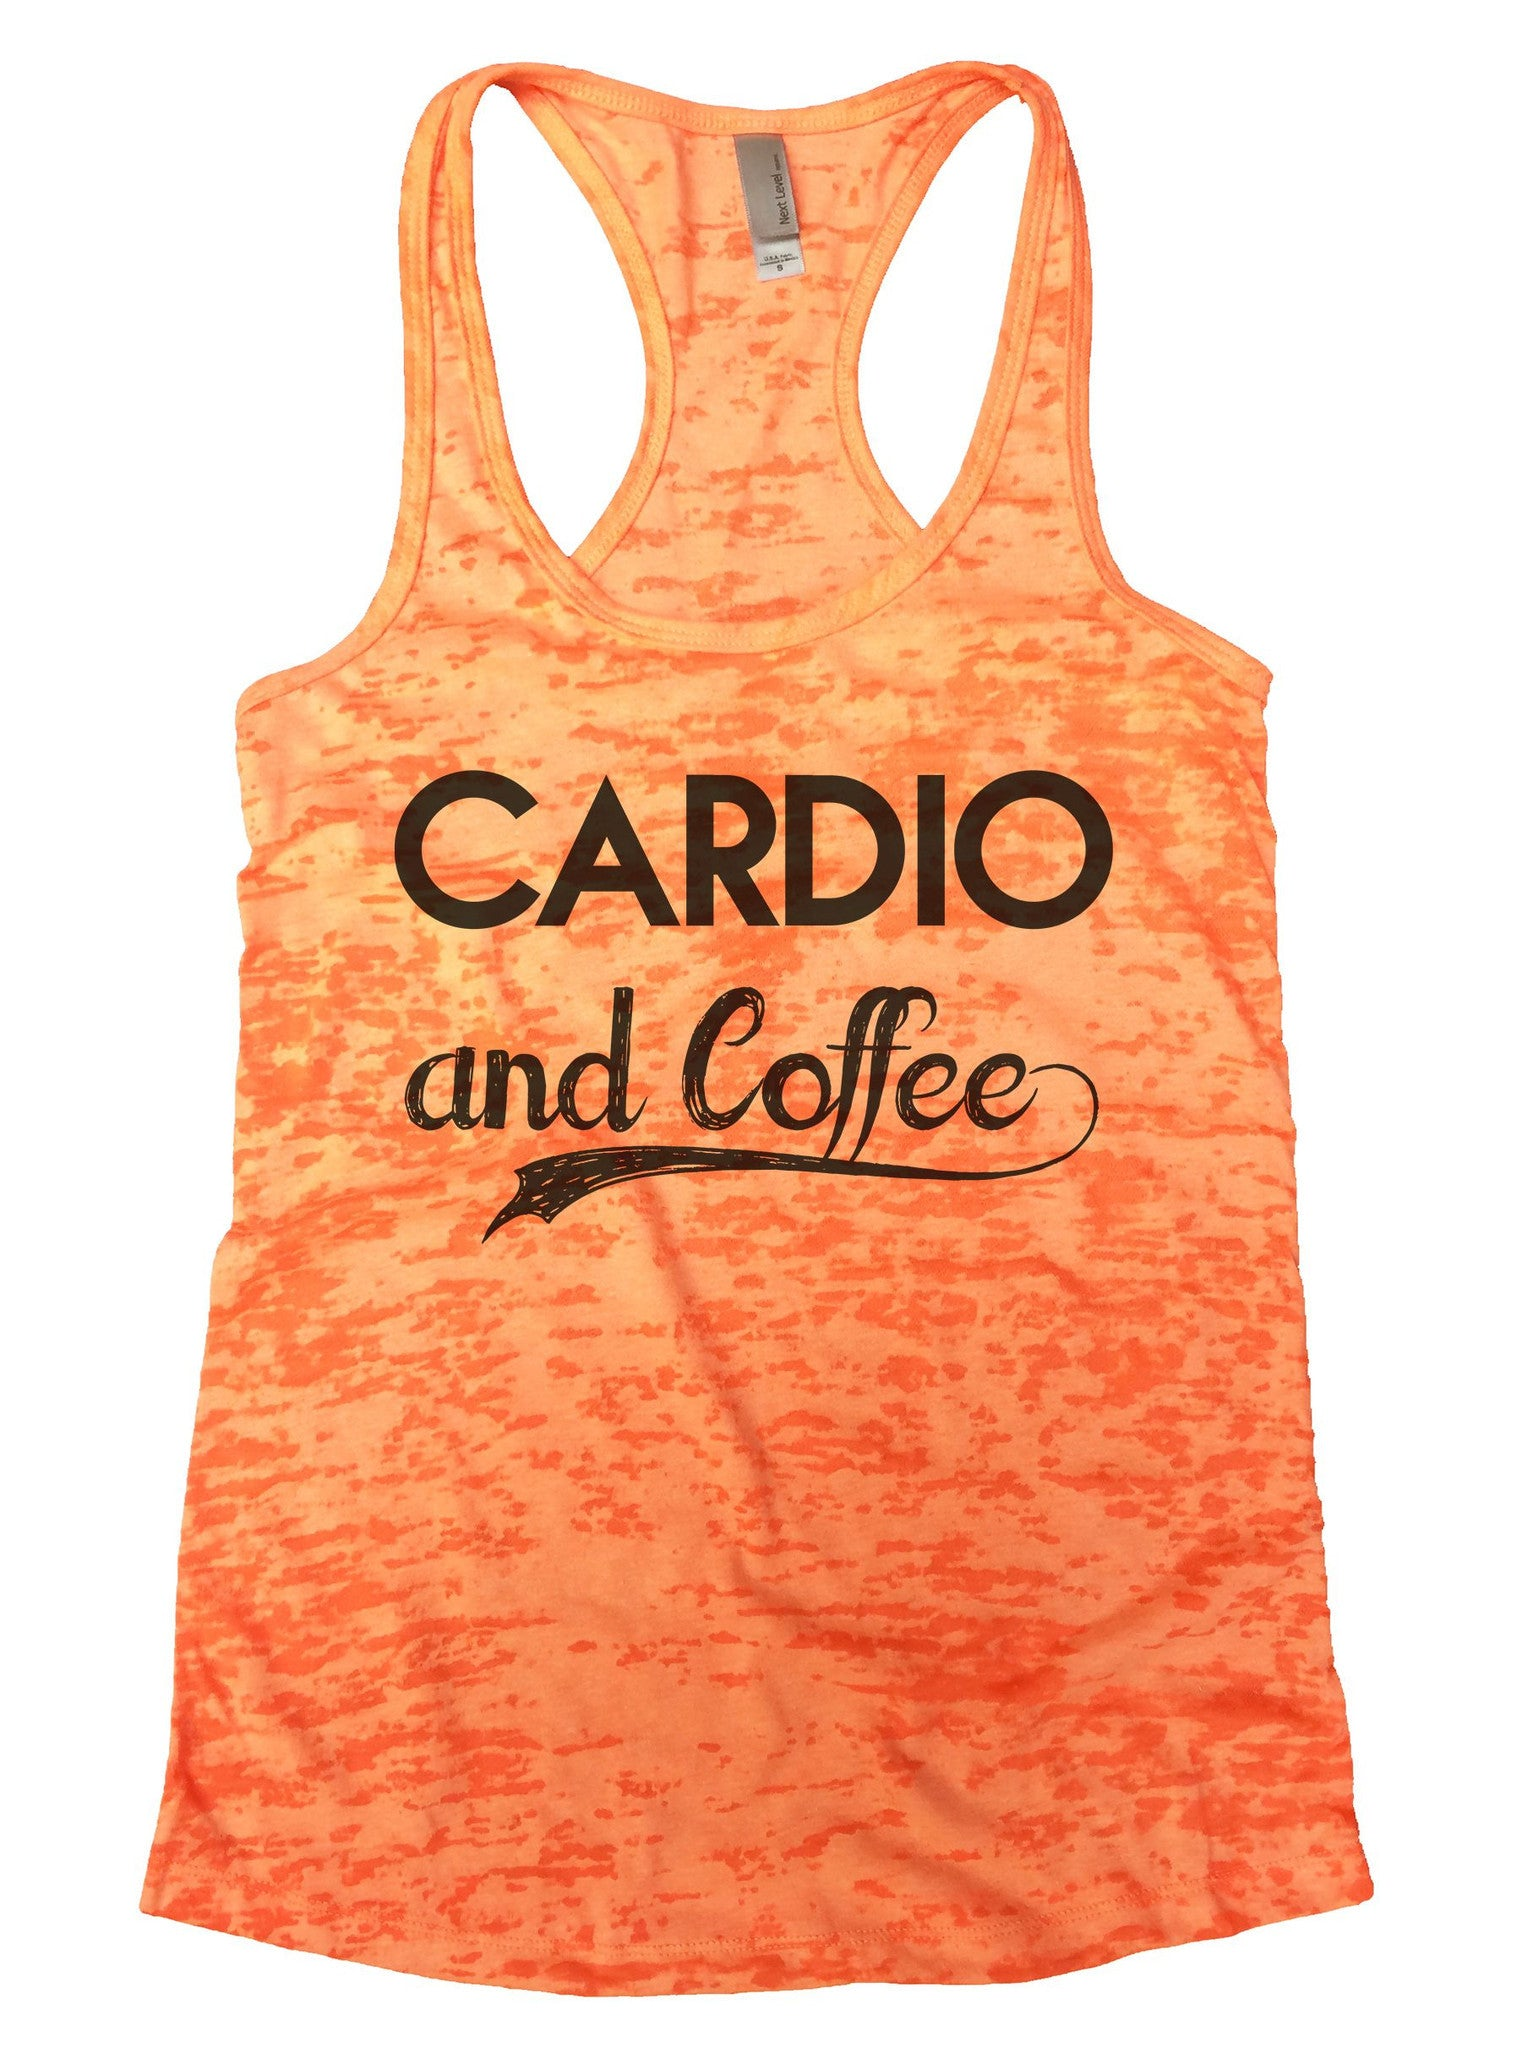 Cardio And Coffee Burnout Tank Top By BurnoutTankTops.com - 797 - Funny Shirts Tank Tops Burnouts and Triblends  - 3